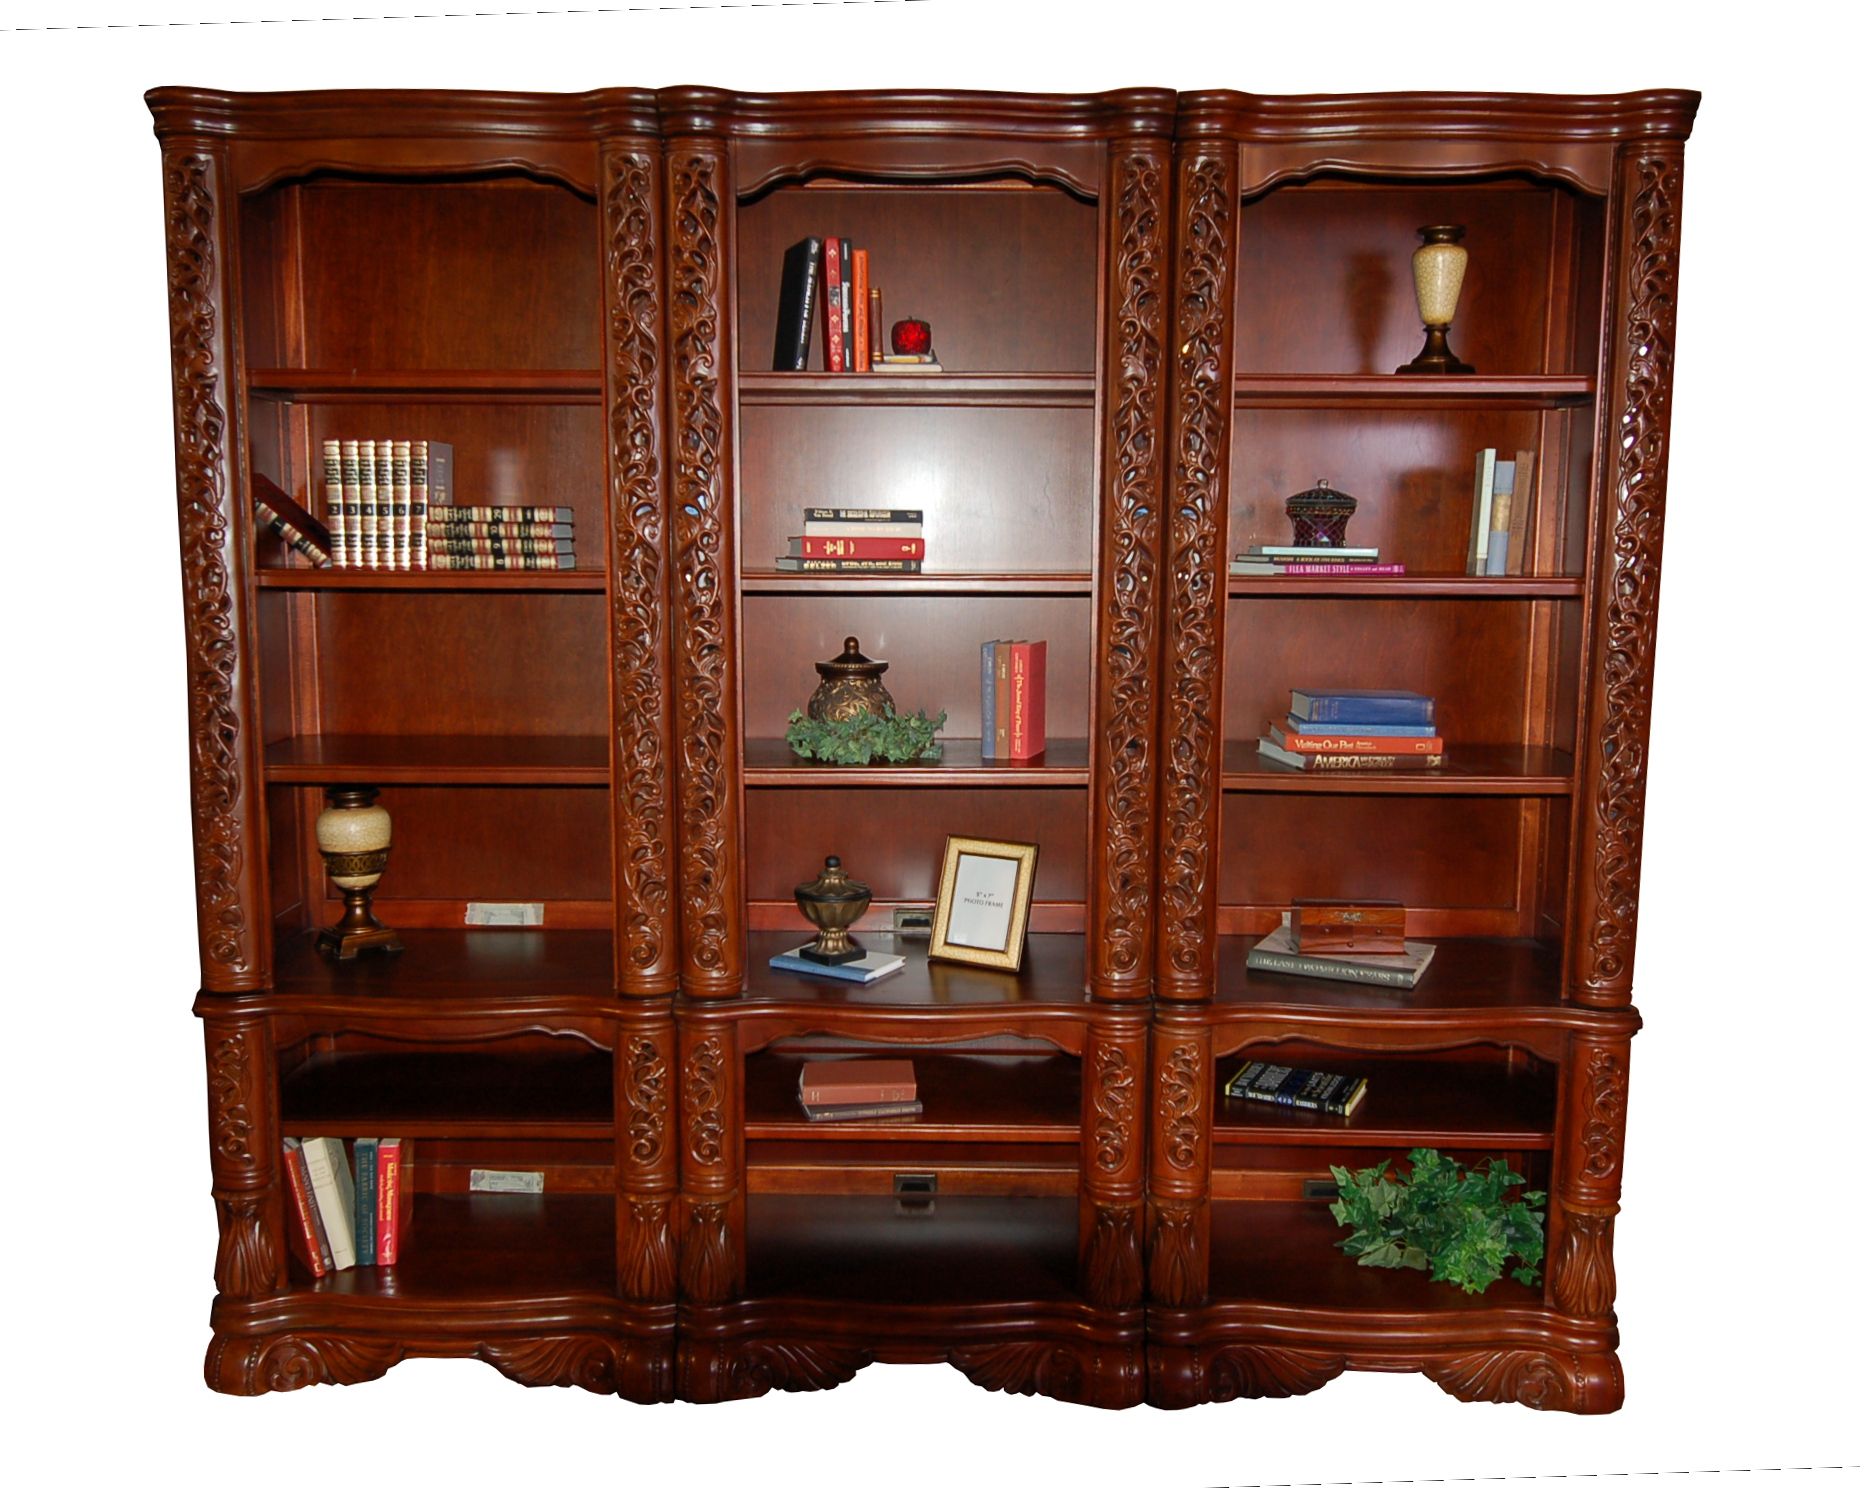 details about ornate 3pc office bookcase wall